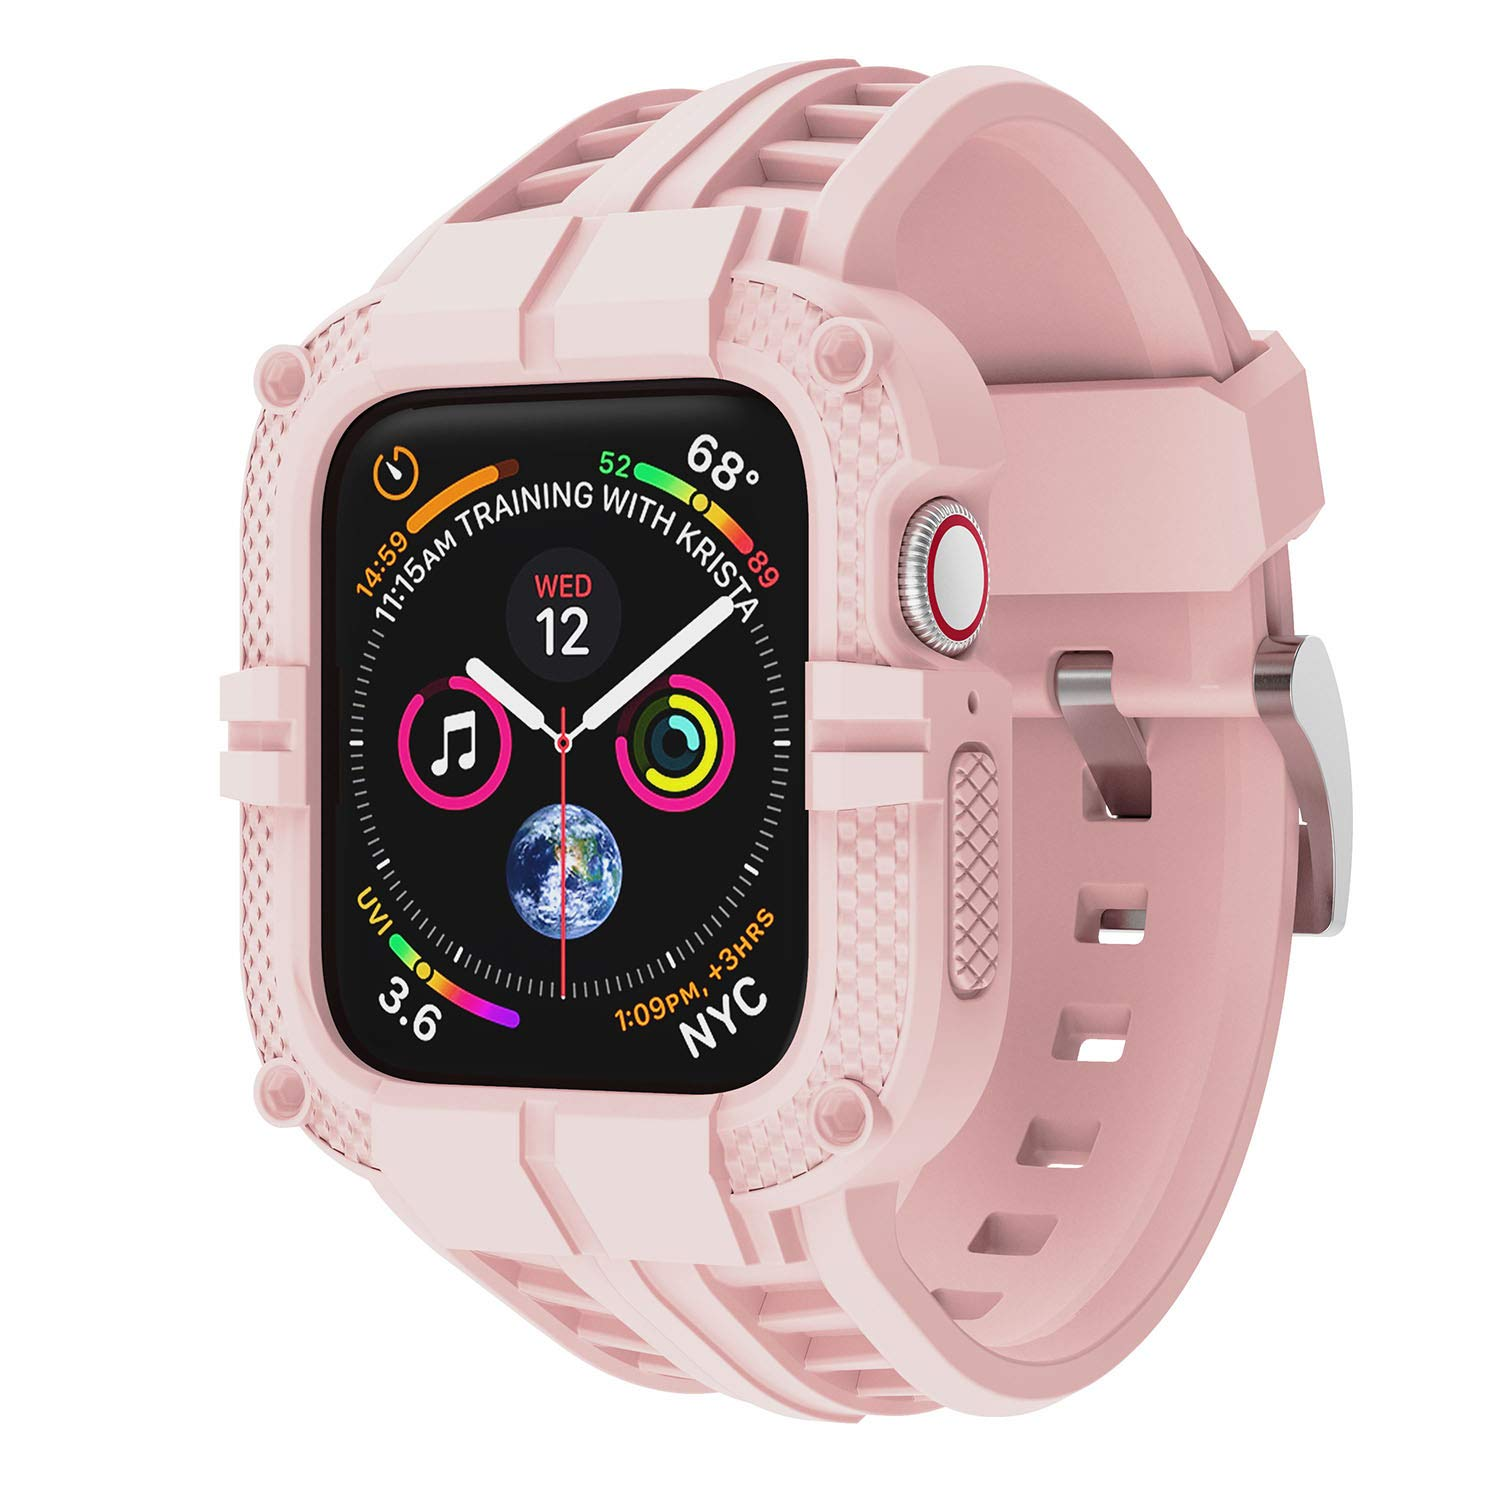 T-ENGINE Band Compatible with Apple Watch Band 40mm Series 6 Series 5/4/SE, TPU Rugged Band with Full Protection Case for Women/Men, Pink